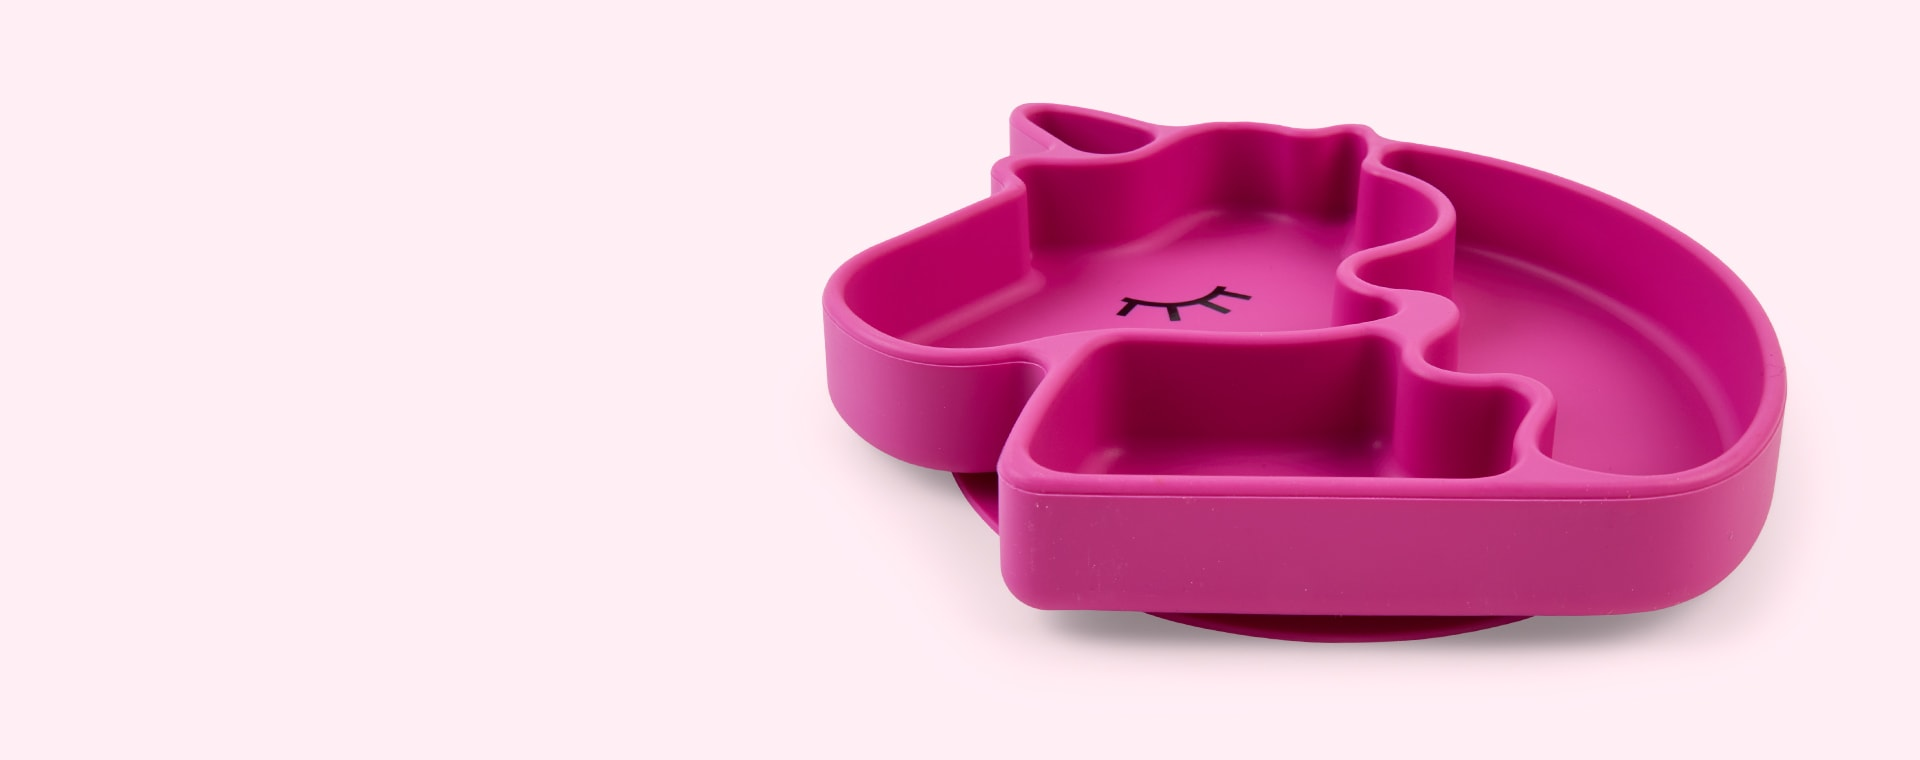 Unicorn Bumkins Silicone Animal Grip Dish